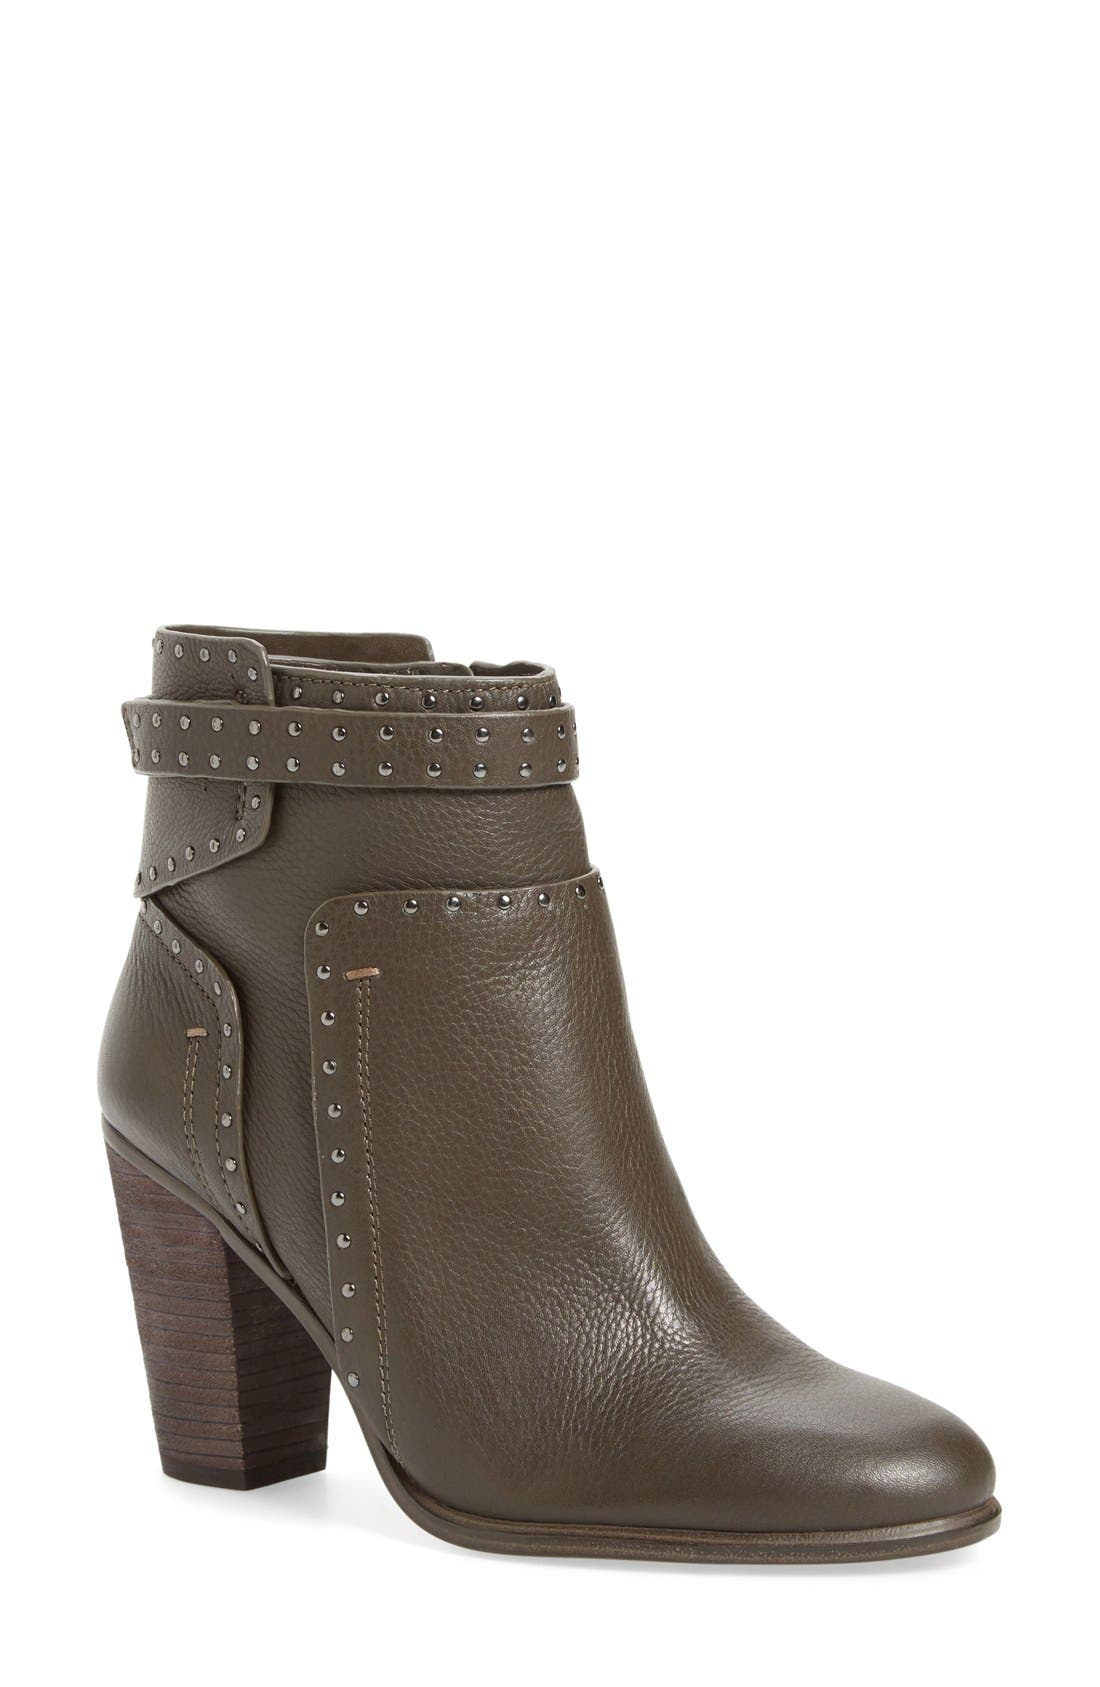 Alternate Image 1 Selected - Vince Camuto 'Faythes' Bootie (Women)